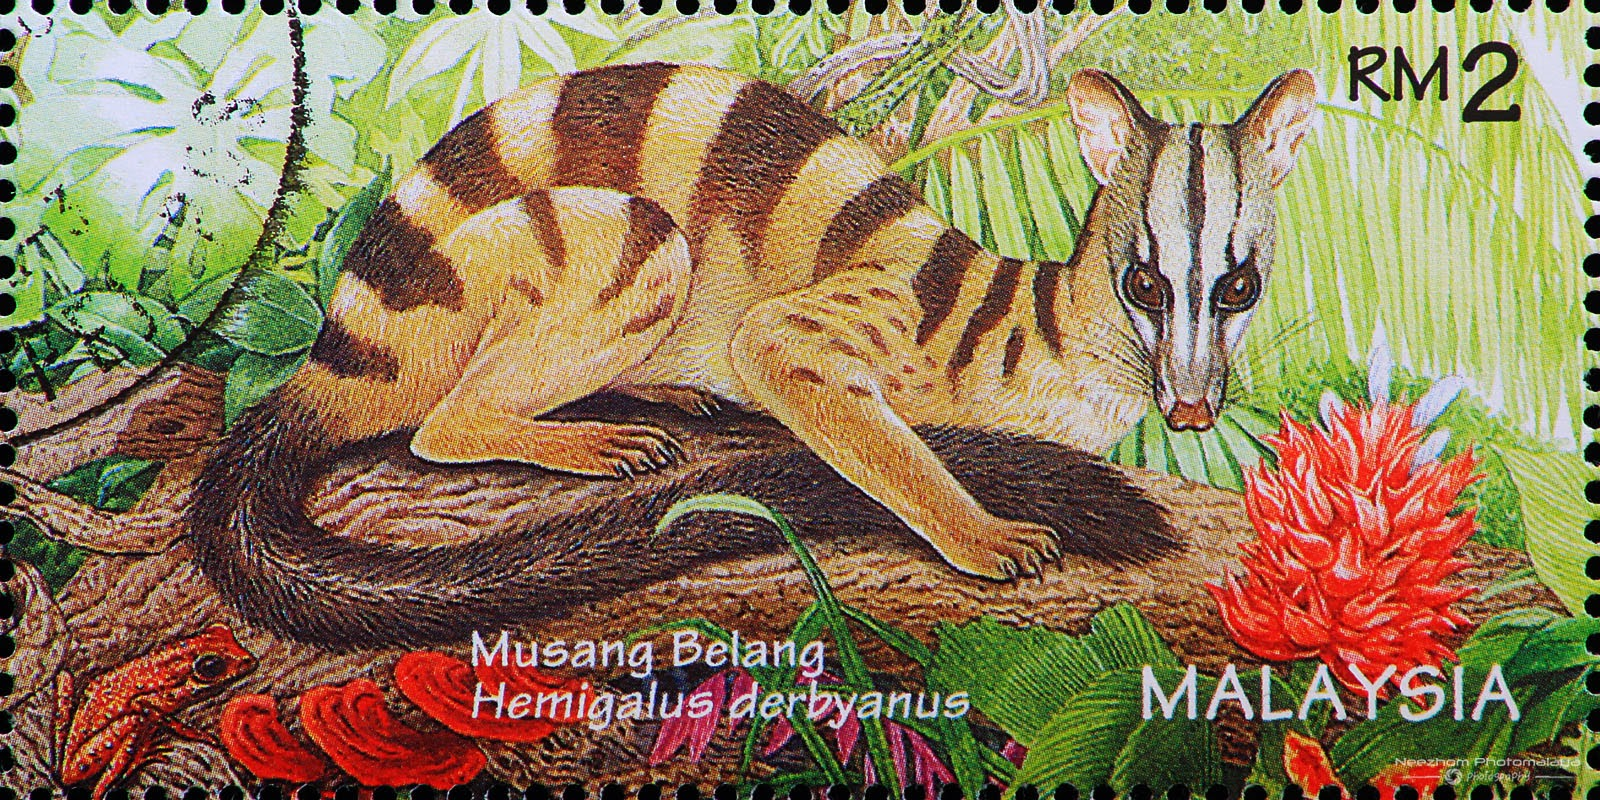 Malaysia 1996 Wildlife stamps - Banded Palm Civet / Musang Belang (Hemigalus derbyanus) RM2